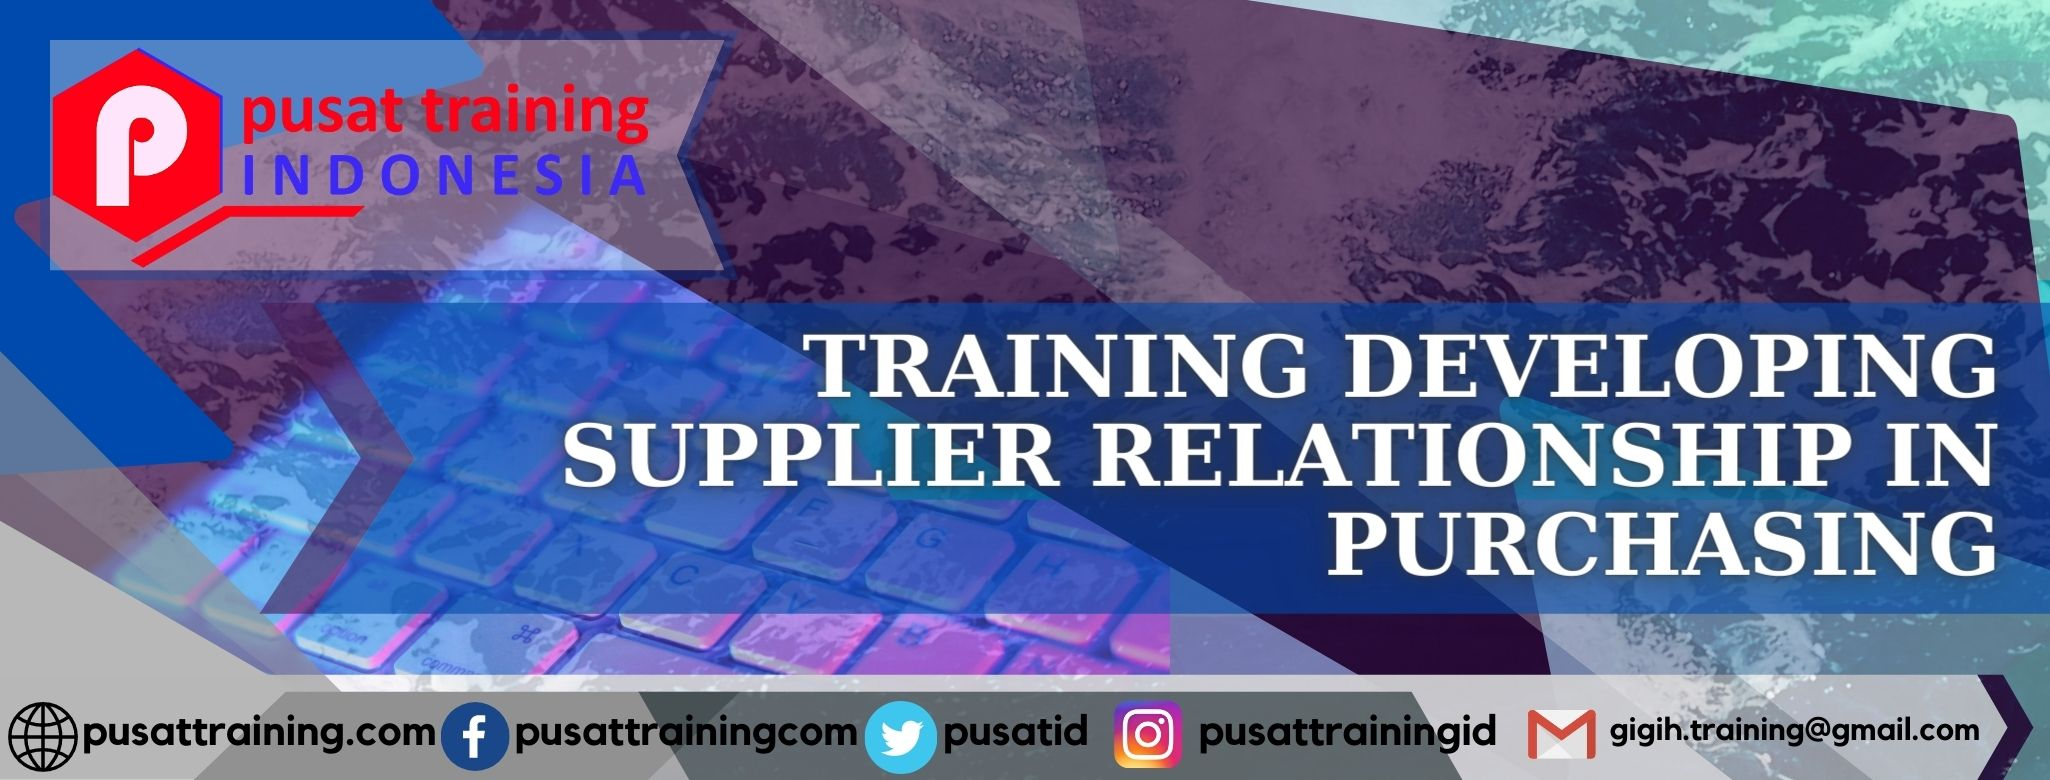 training-developing-supplier-relationship-in-purchasing